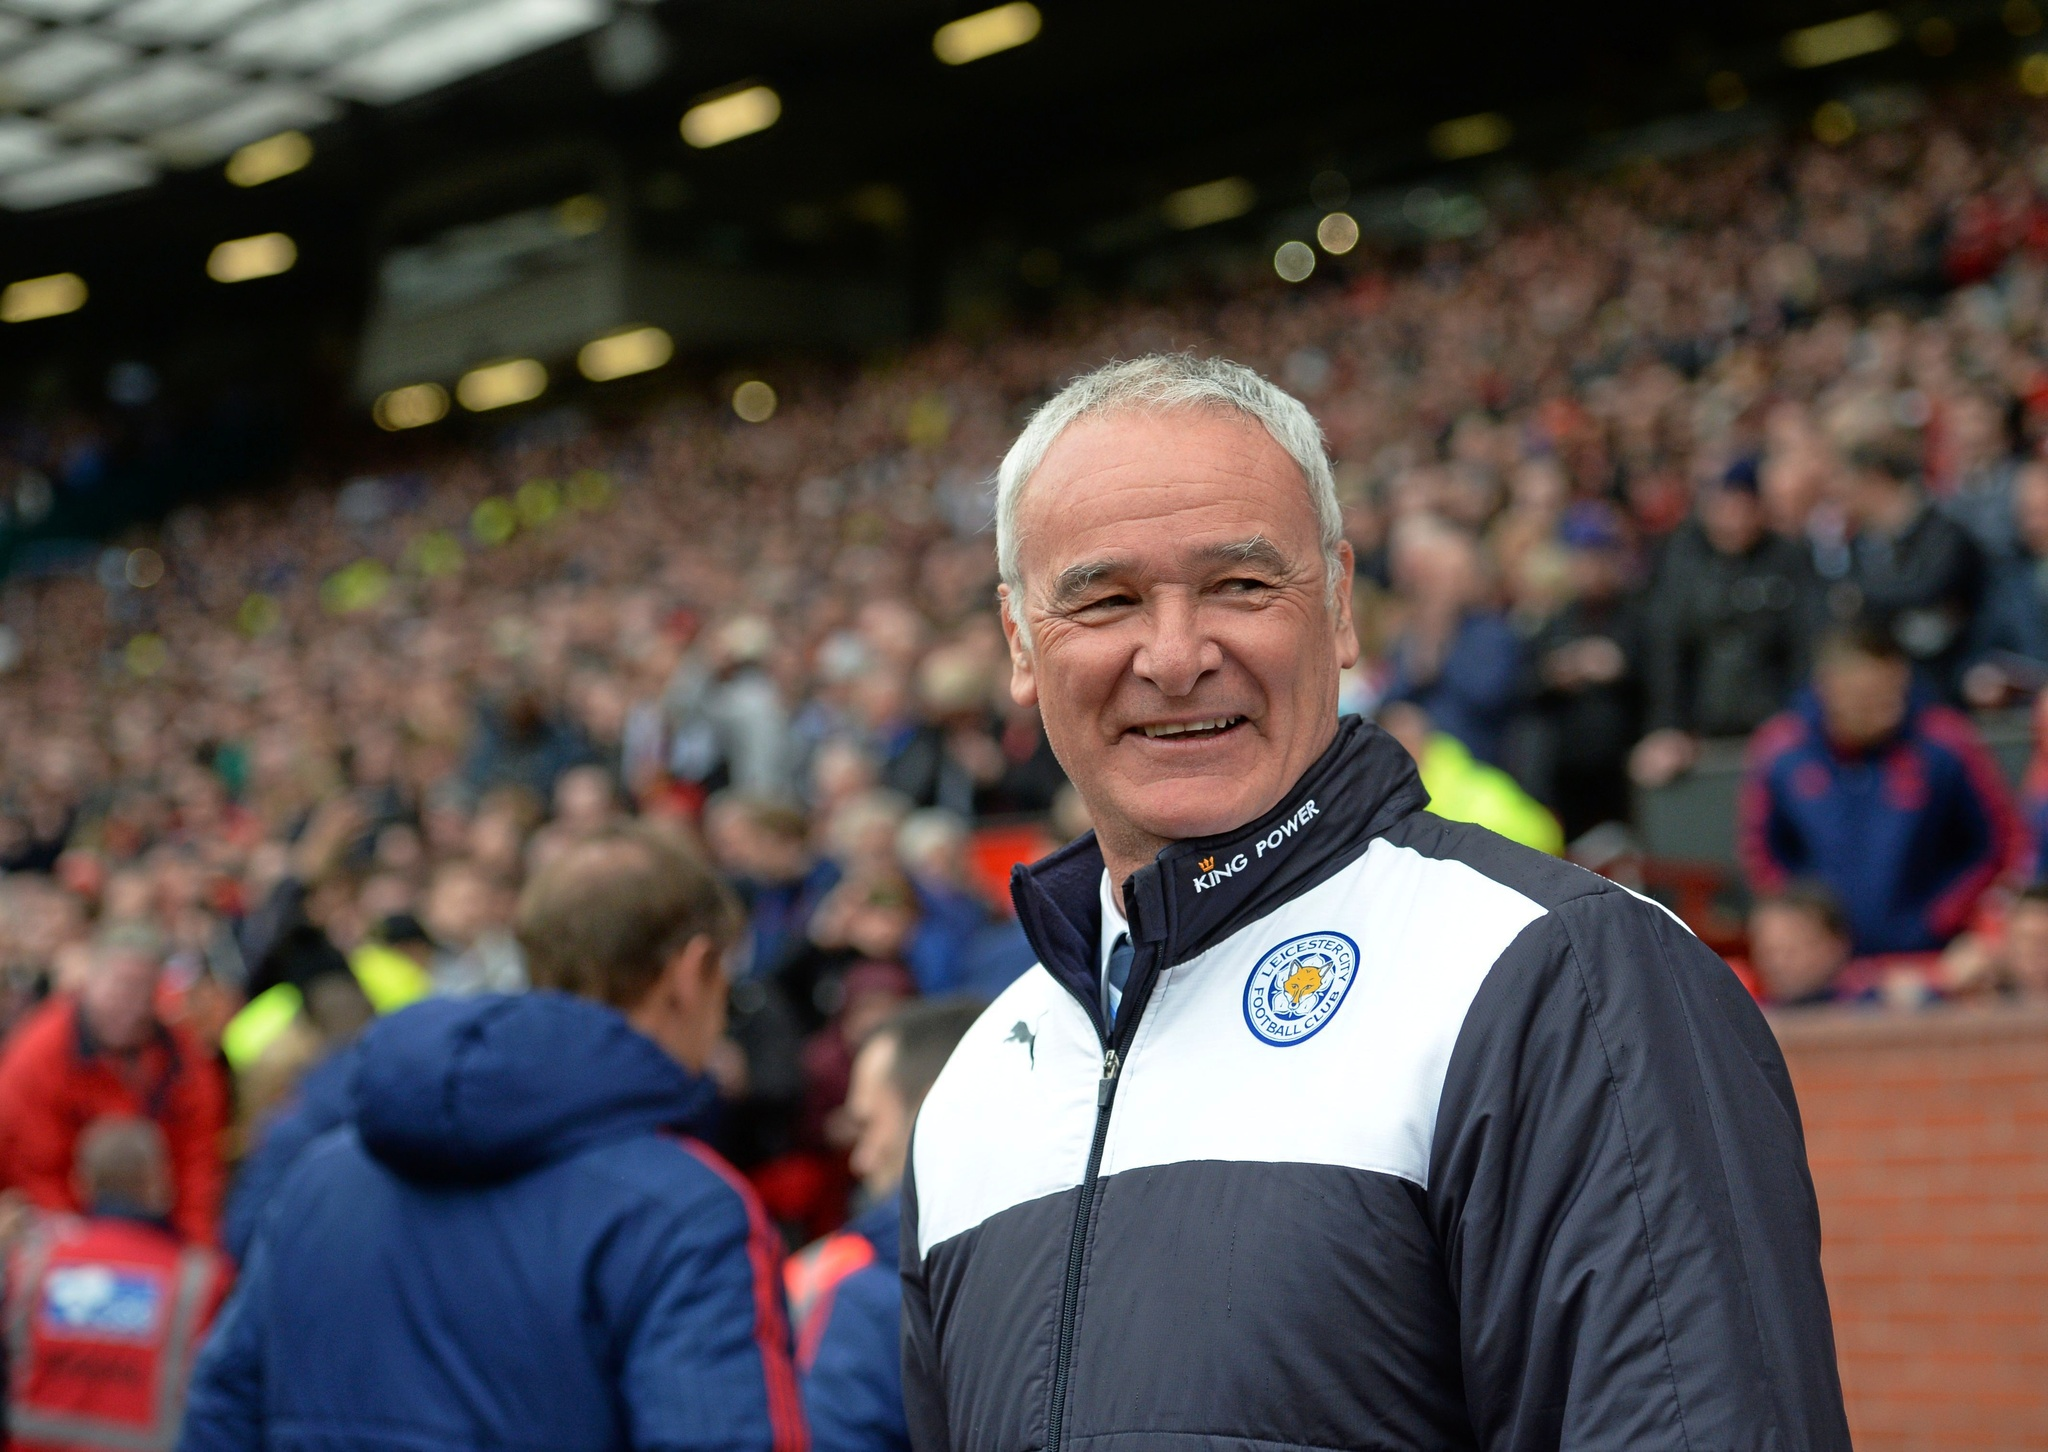 lt;HIT gt;Leicester lt;/HIT gt; Citys Italian manager Claudio lt;HIT gt;Ranieri lt;/HIT gt; arrives for the English Premier League football match between Manchester United and lt;HIT gt;Leicester lt;/HIT gt; City at Old Trafford in Manchester, north west England, on May 1, 2016. / AFP PHOTO / OLI SCARFF / RESTRICTED TO EDITORIAL USE. No use with unauthorized audio, video, data, fixture lists, club/league logos or live services. Online in-match use limited to 75 images, no video emulation. No use in betting, games or single club/league/player publications. /